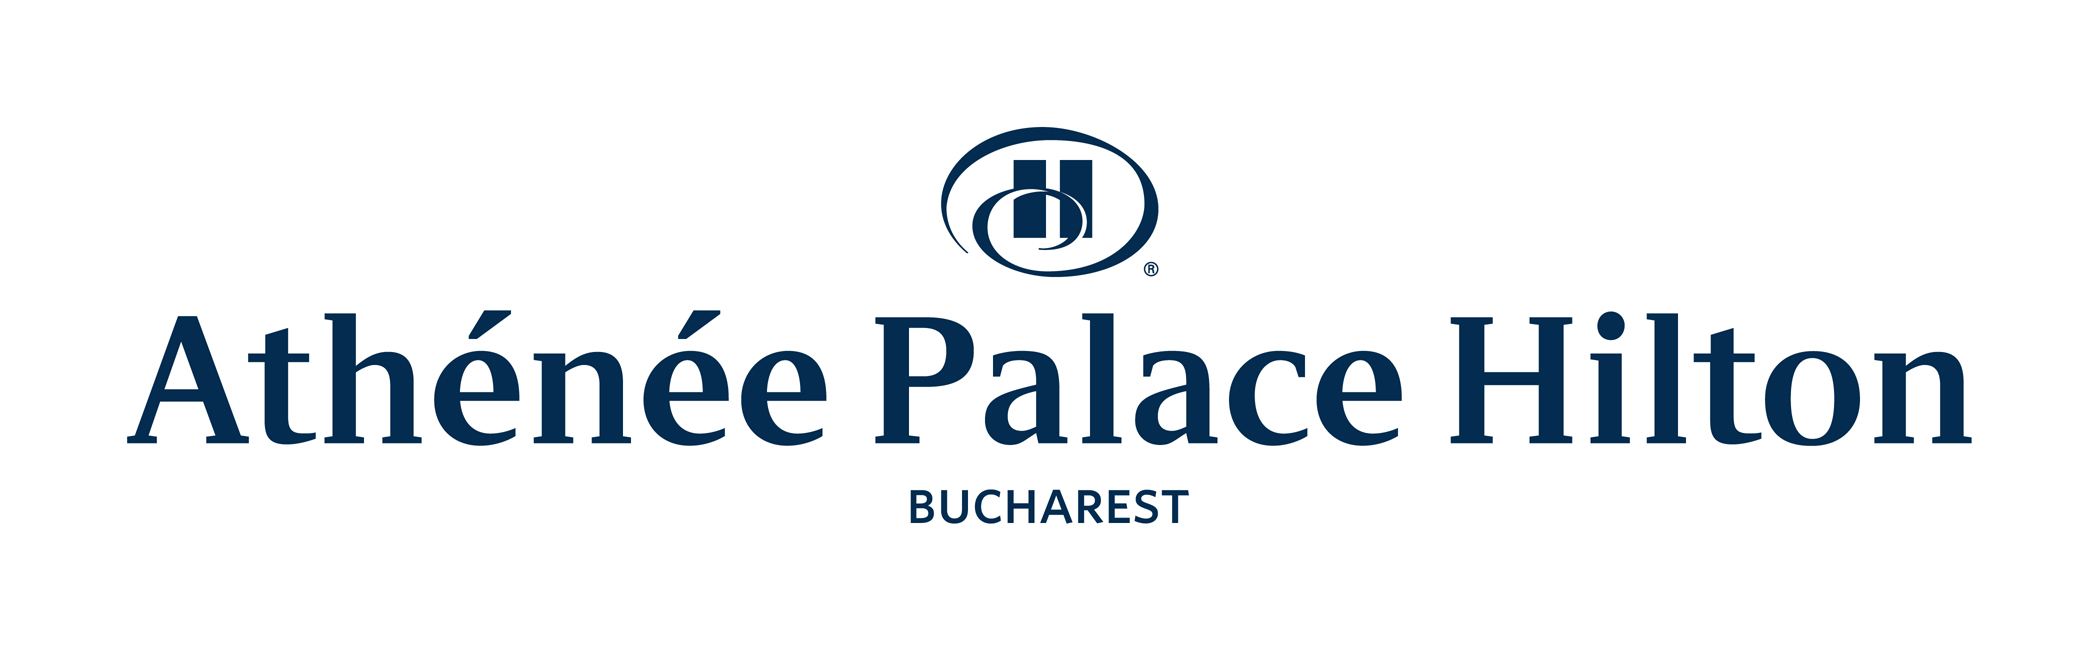 palace casino address